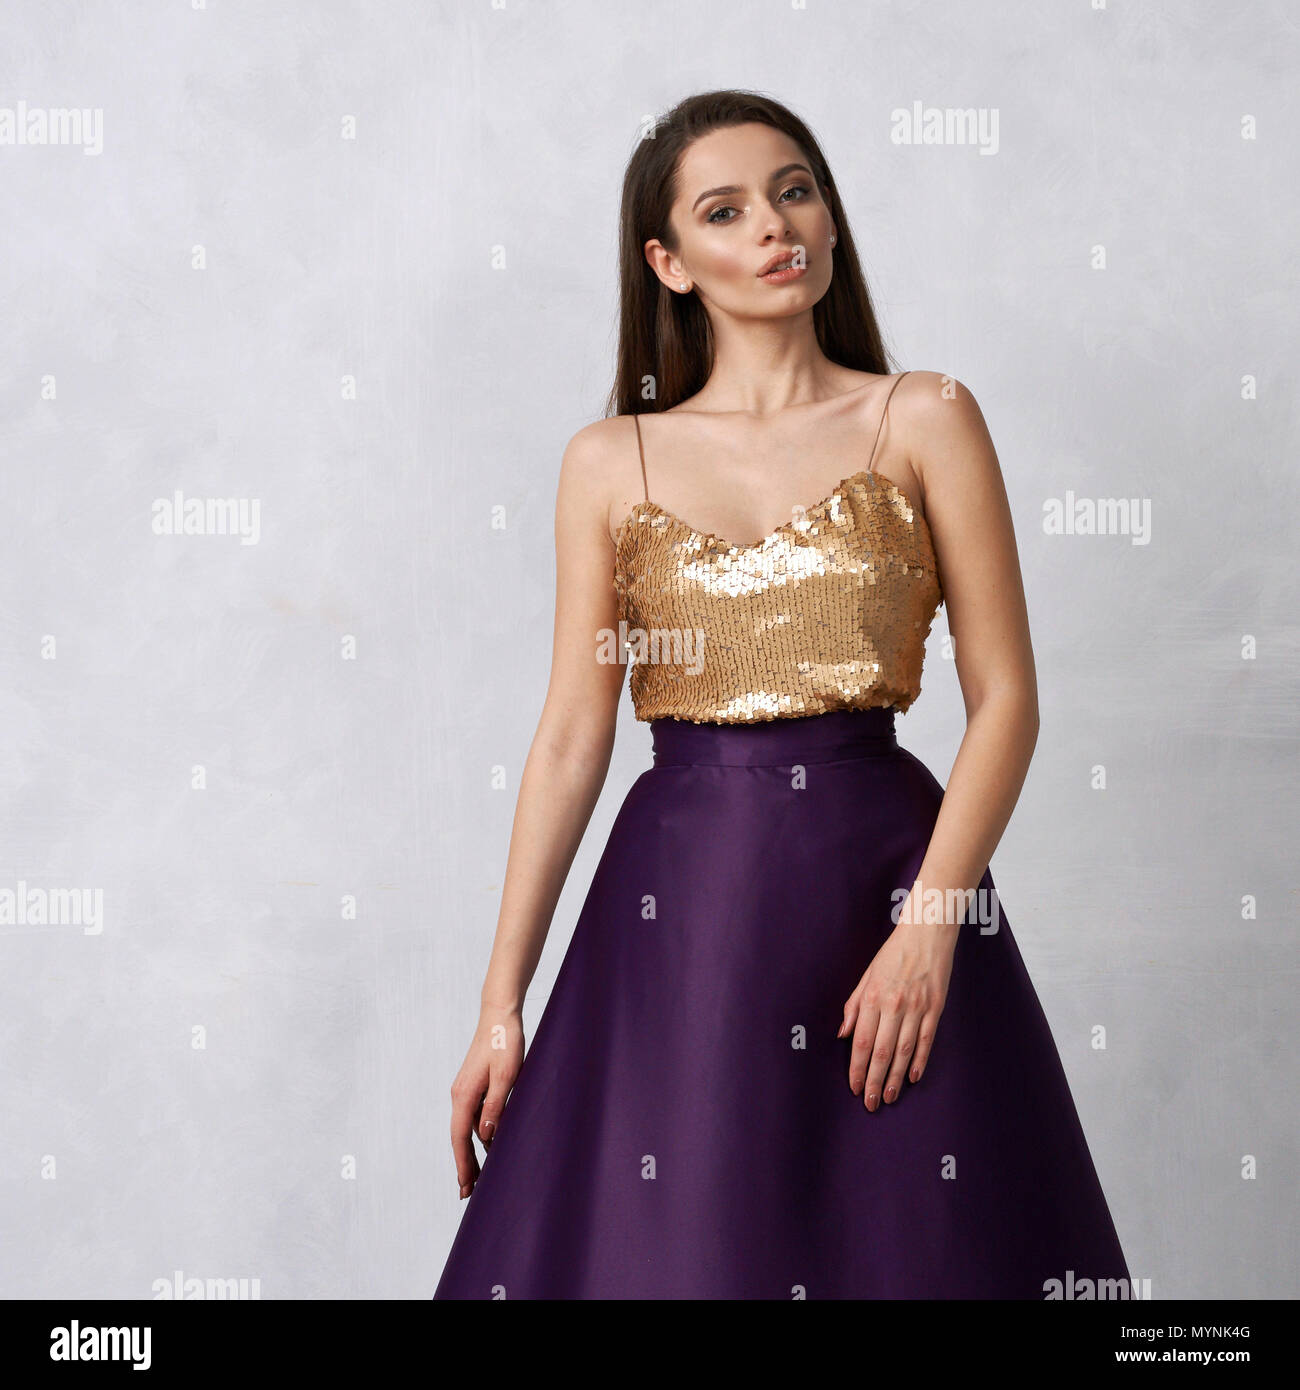 b380f798a334a Young woman in formal dress with golden sequin top and purple sa ...